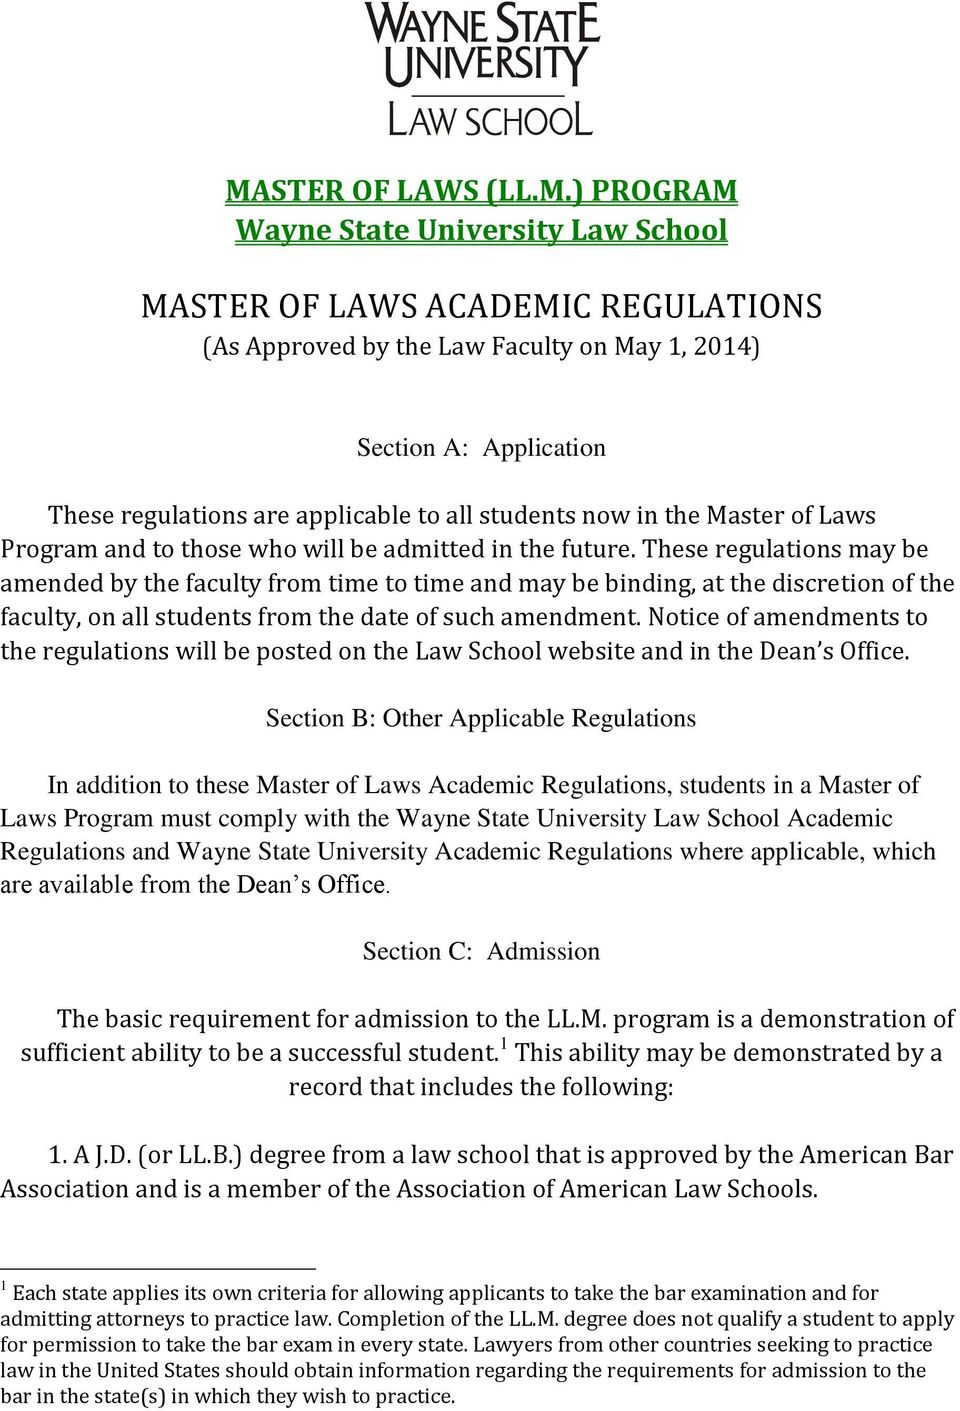 These regulations may be amended by the faculty from time to time and may be binding, at the discretion of the faculty, on all students from the date of such amendment.